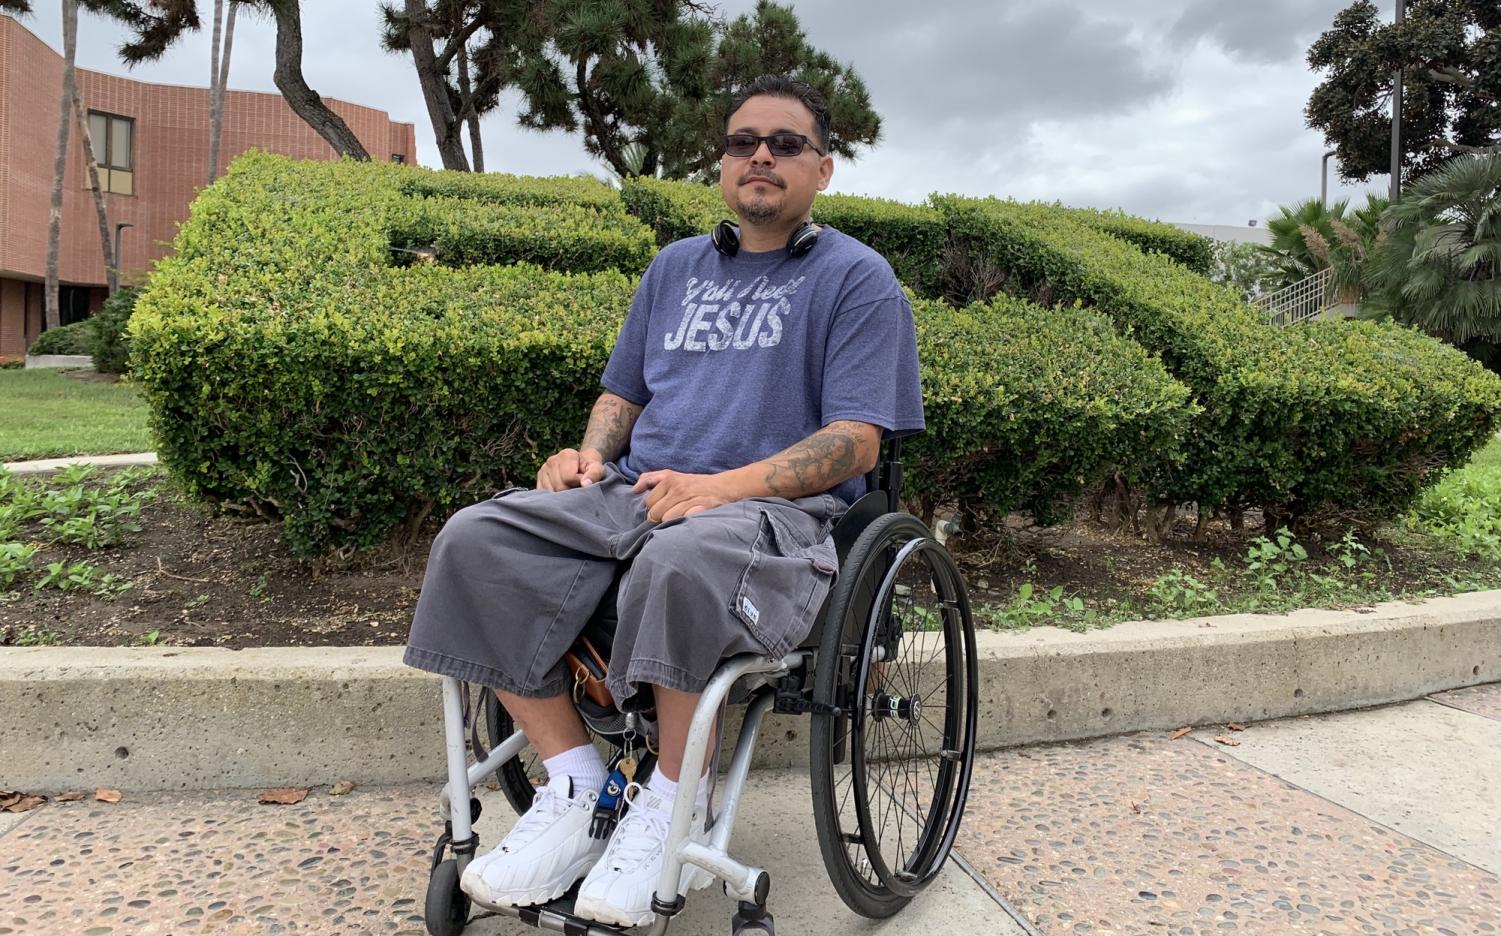 David Nieto poses for a picture outside the Bookstore at El Camino College on Thursday, Sept. 26. As a third-year student, he has maintained a 4.0 G.P.A while experiencing food and housing insecurities that have forced him to live in his car for a few months last year. Jose Tobar/The Union